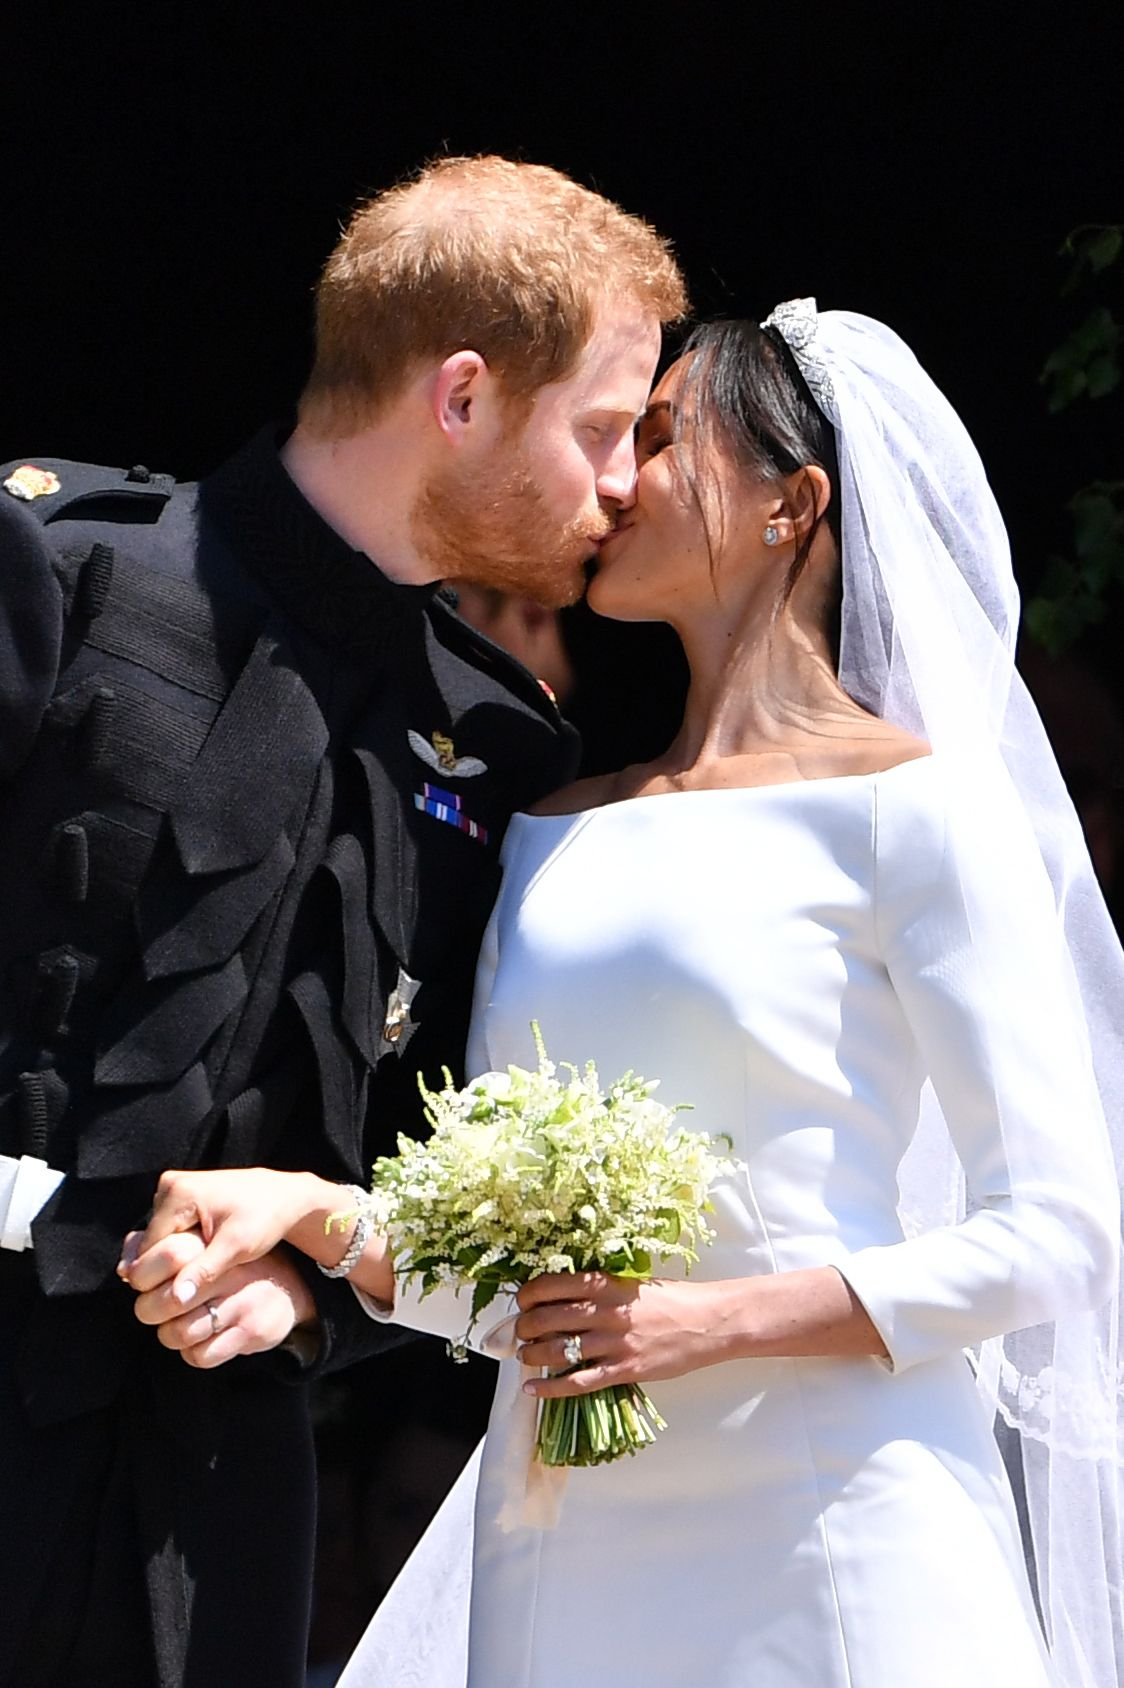 "Prince Harry has been a very hands-on groom—from helping design the engagement ring he gave to Meghan including two of his mother's own diamonds to hand-plucking flowers for his bride's bouquet . ""Prince Harry handpicked several flowers yesterday from their private garden at Kensington Palace to add to the bespoke bridal bouquet designed by florist Philippa Craddock,"" reads a statement from Kensington Palace."